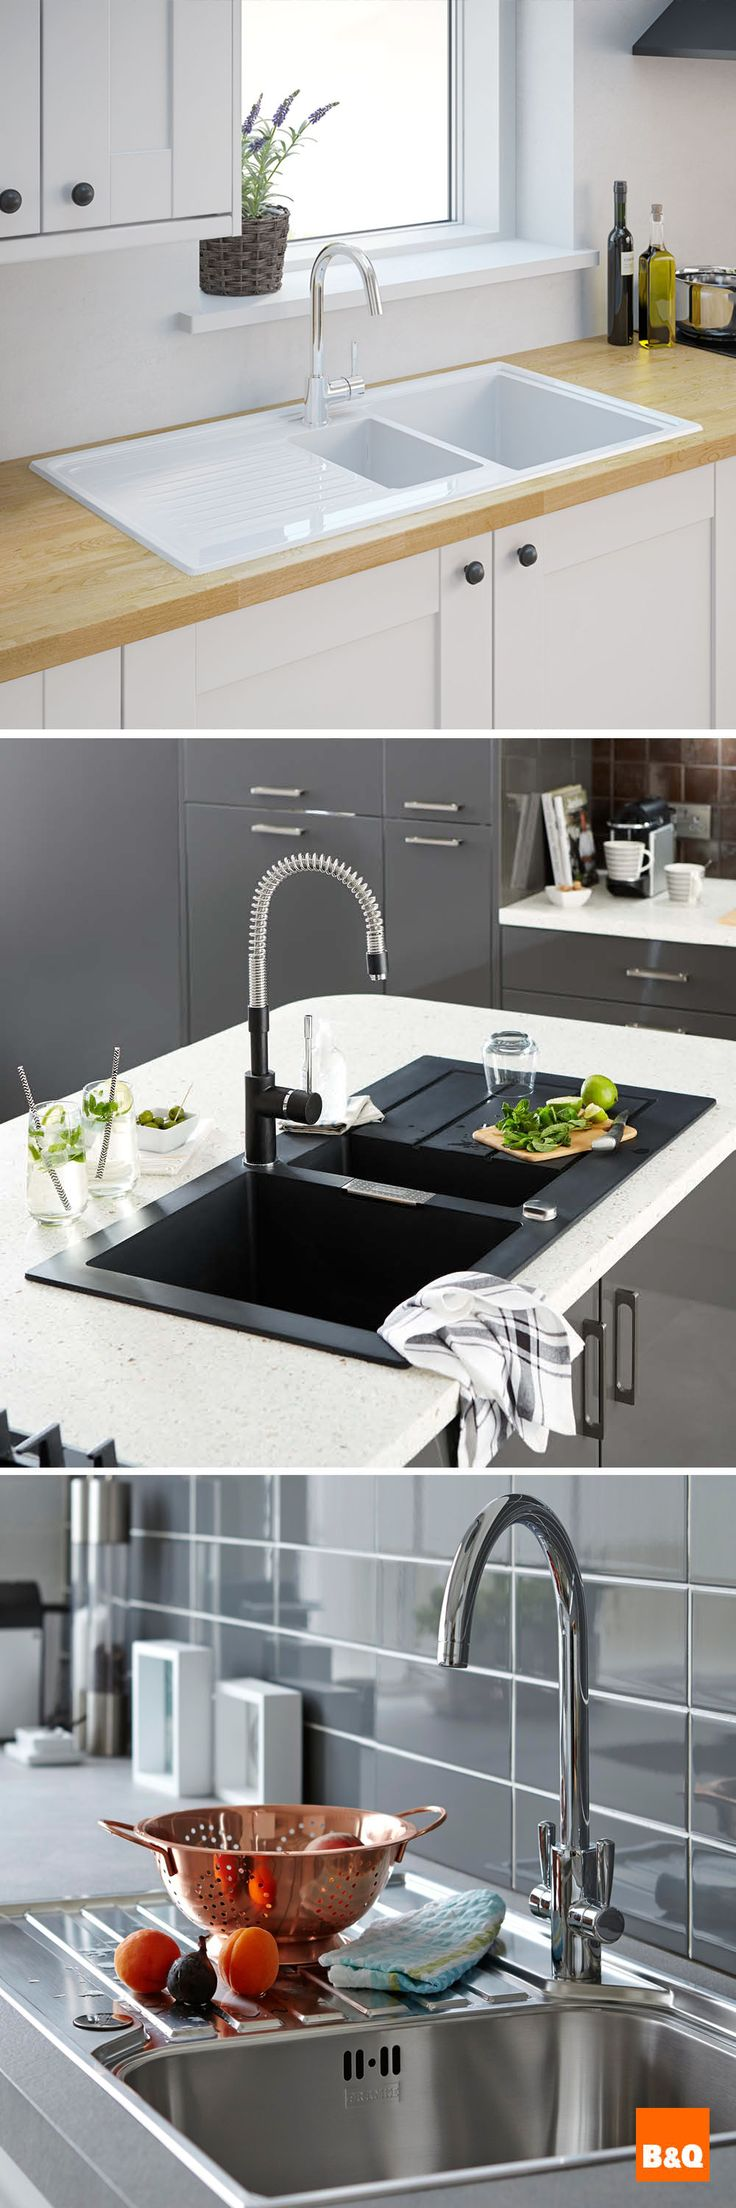 Update your kitchen by simply replacing your sink with a stylish new one! Change the taps to complete the look - what a difference it will make!